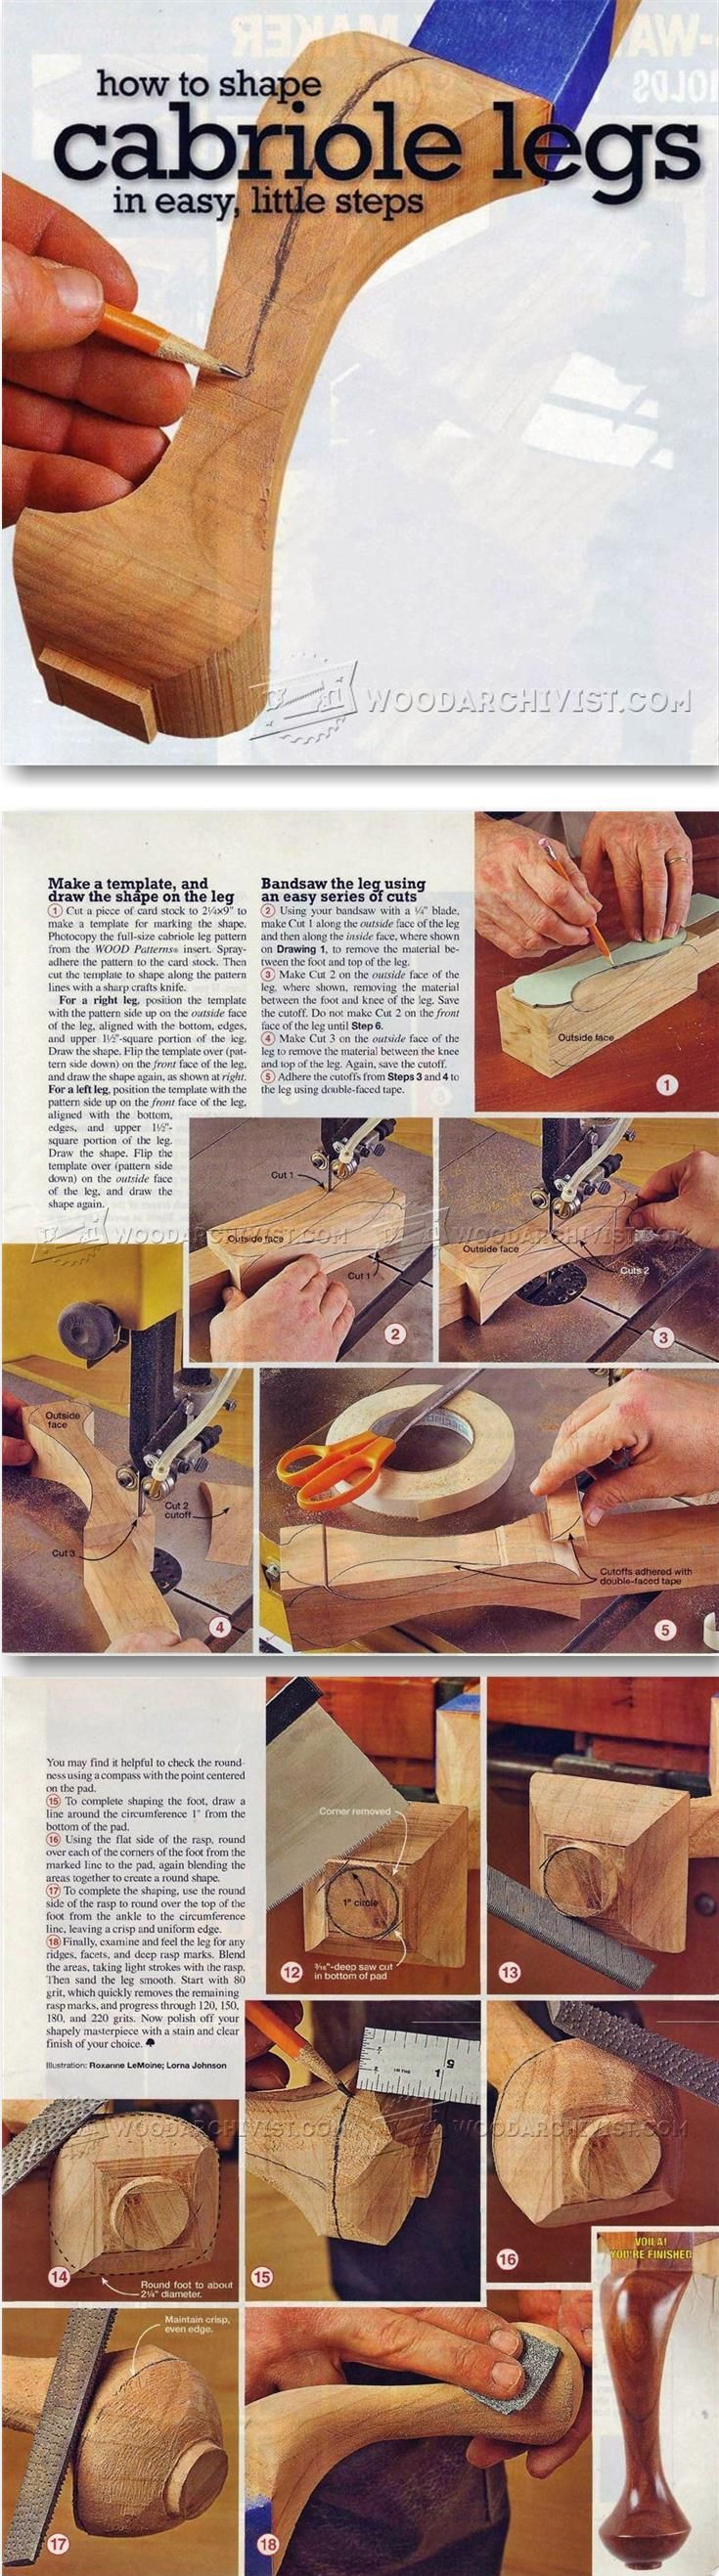 Teds Woodworking Woodworking Plans u0026 Projects